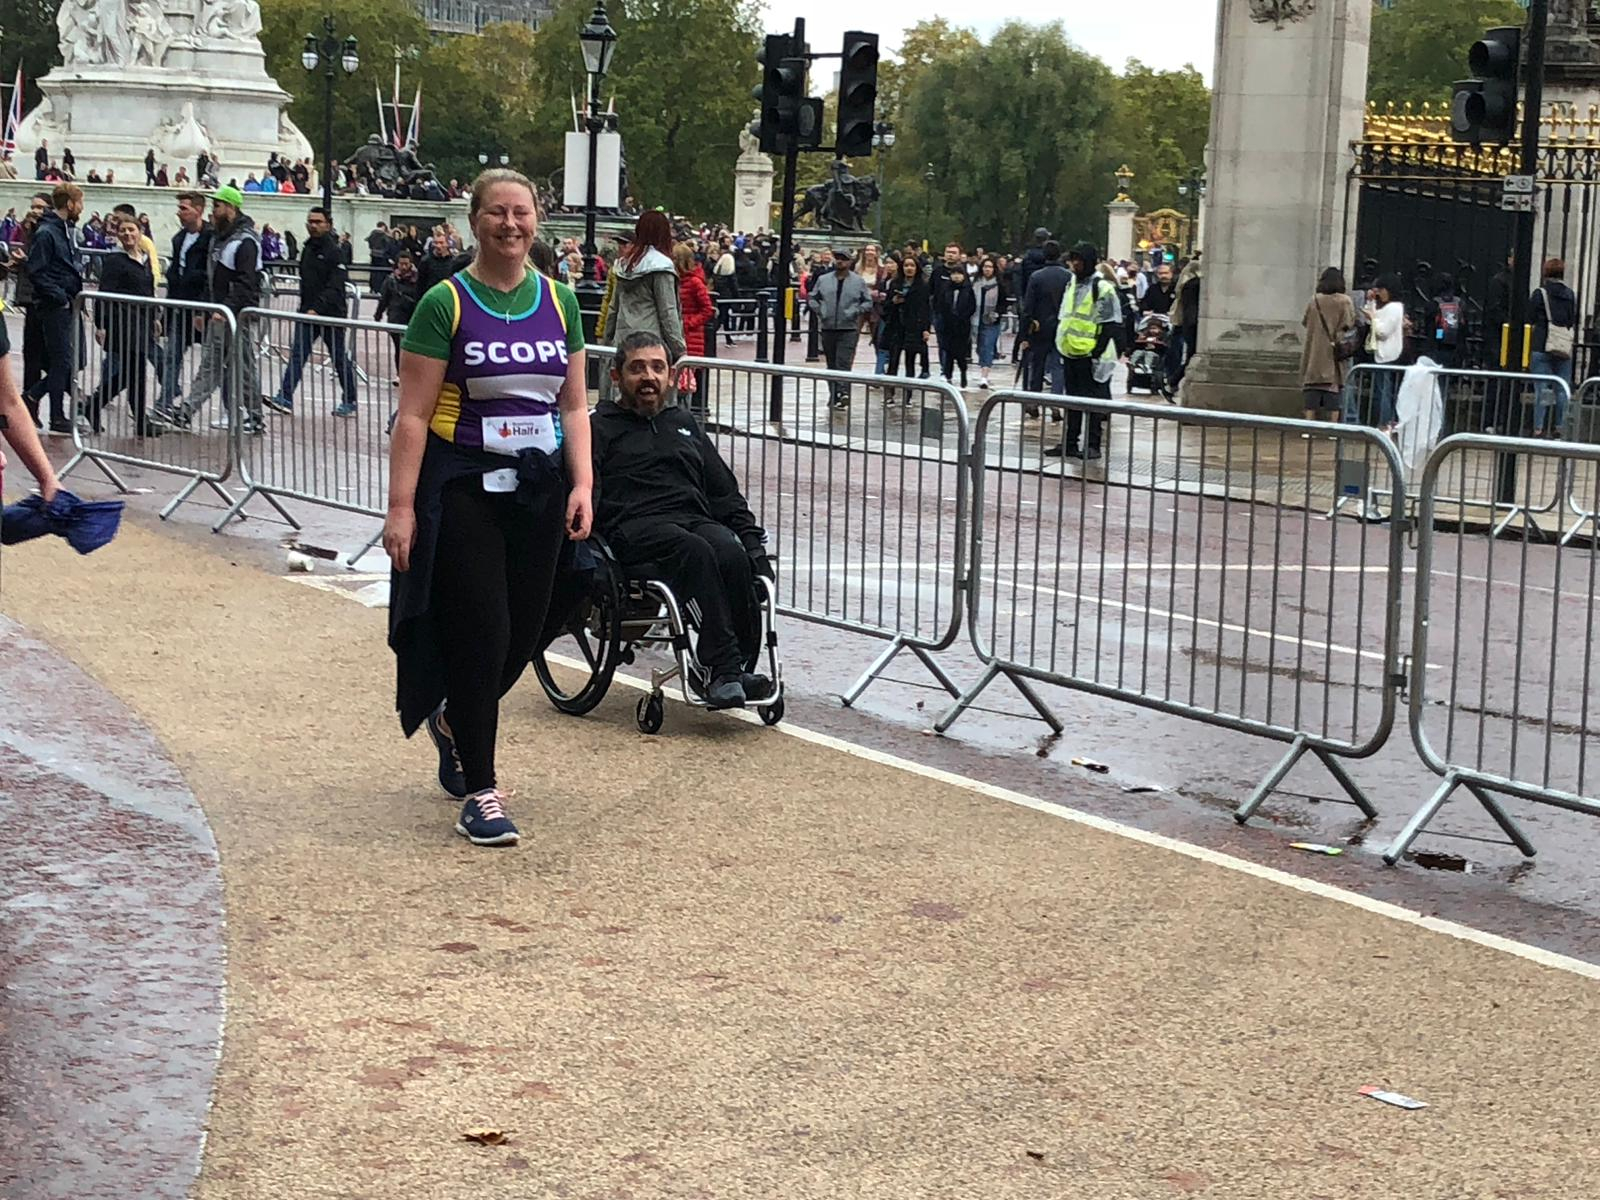 Man in a wheelchair and a woman taking part in the marathon